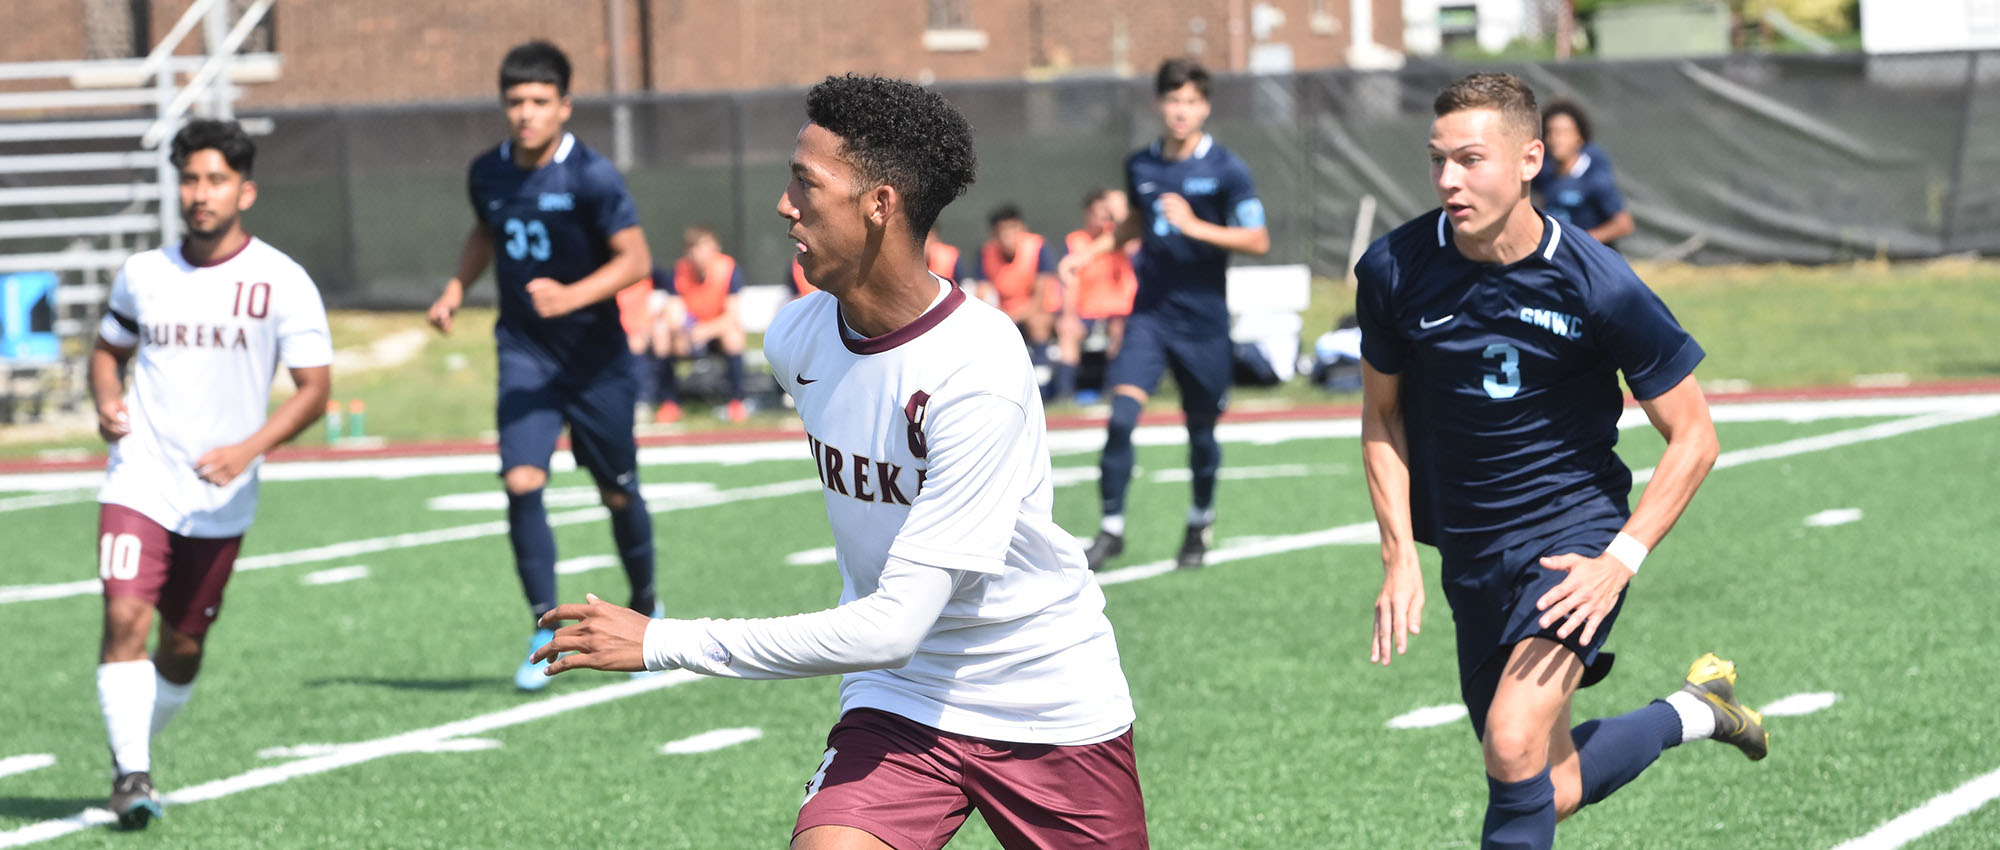 Westminster Gets Clean Sheet over EC Men's Soccer, 6-0